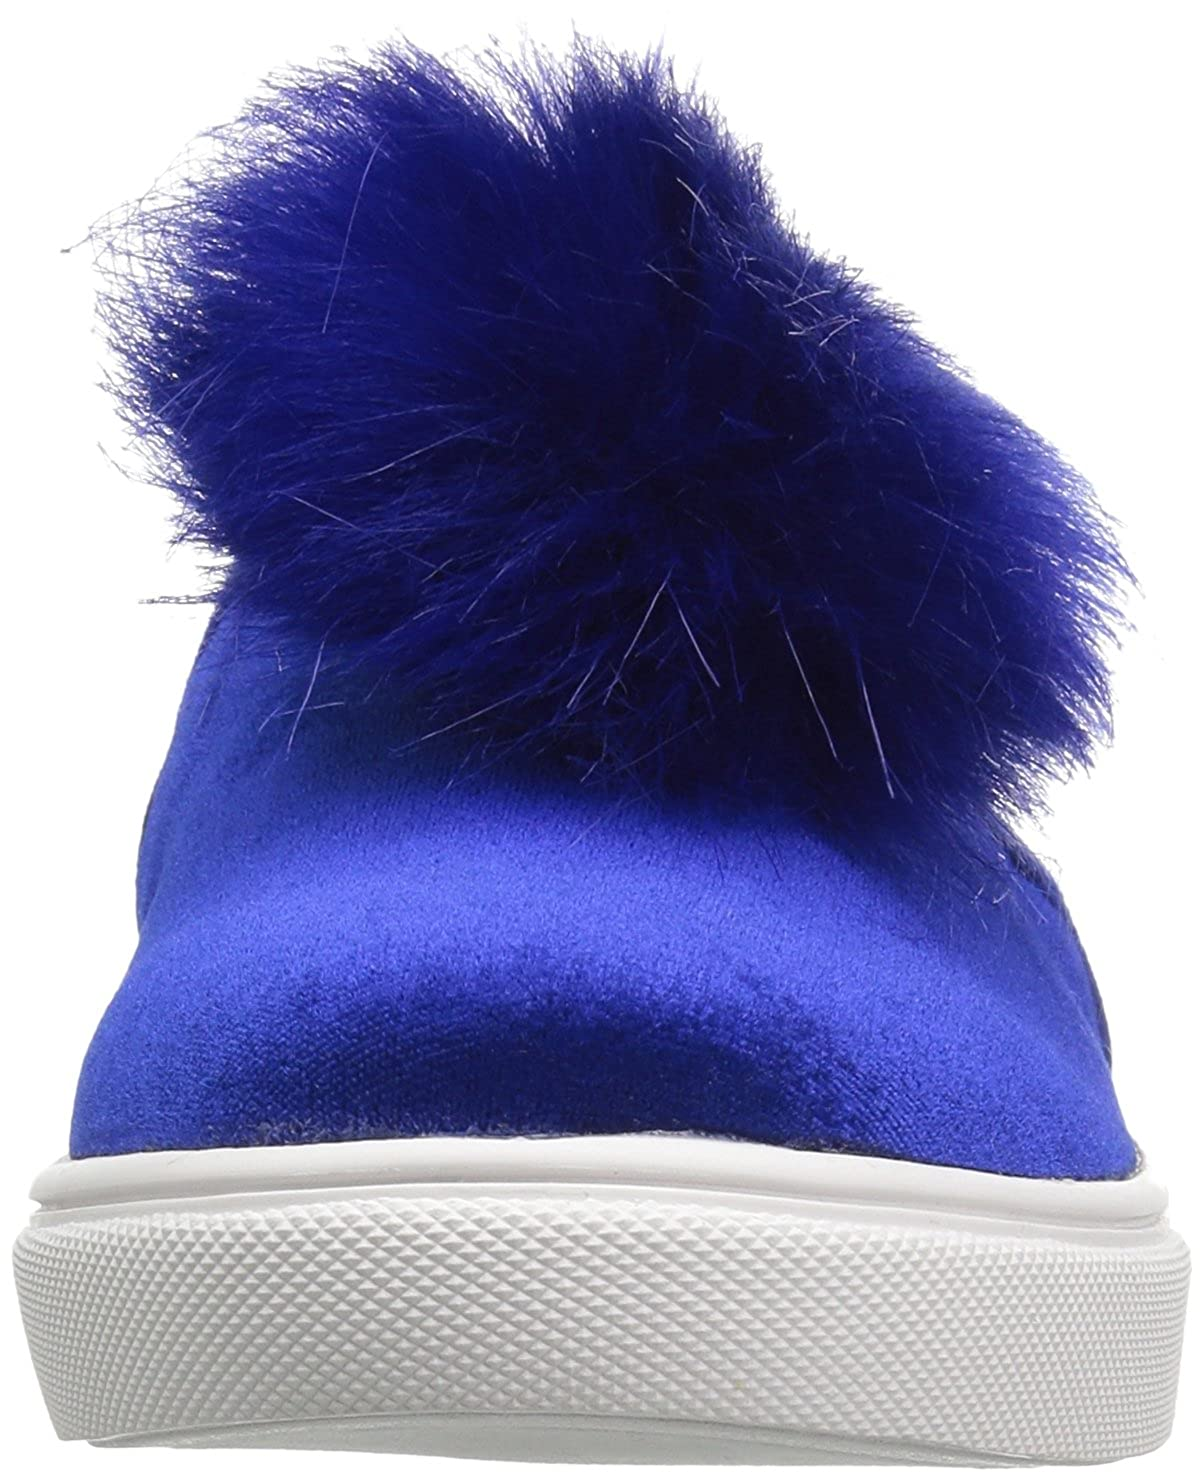 Blau by Betsey Johnson Blau Damens's Zappp Fashion Sneaker, Blau Johnson Velvet, 8.5 M US 2cb4e3